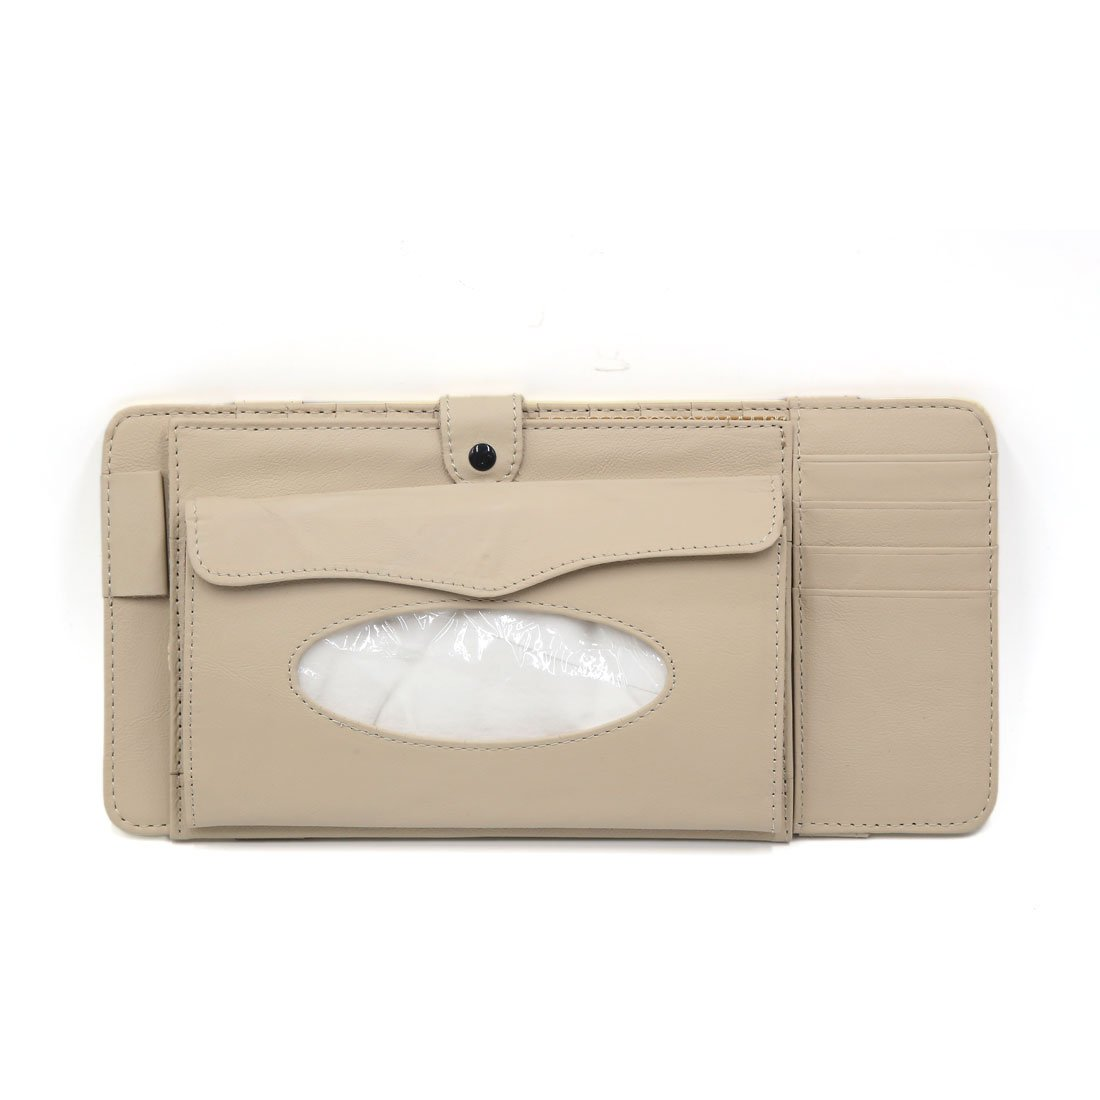 uxcell a17021400ux0721 Beige PU Leather Car Sun Visor Multifunctional Double-Deck CD Holder Tissue Box